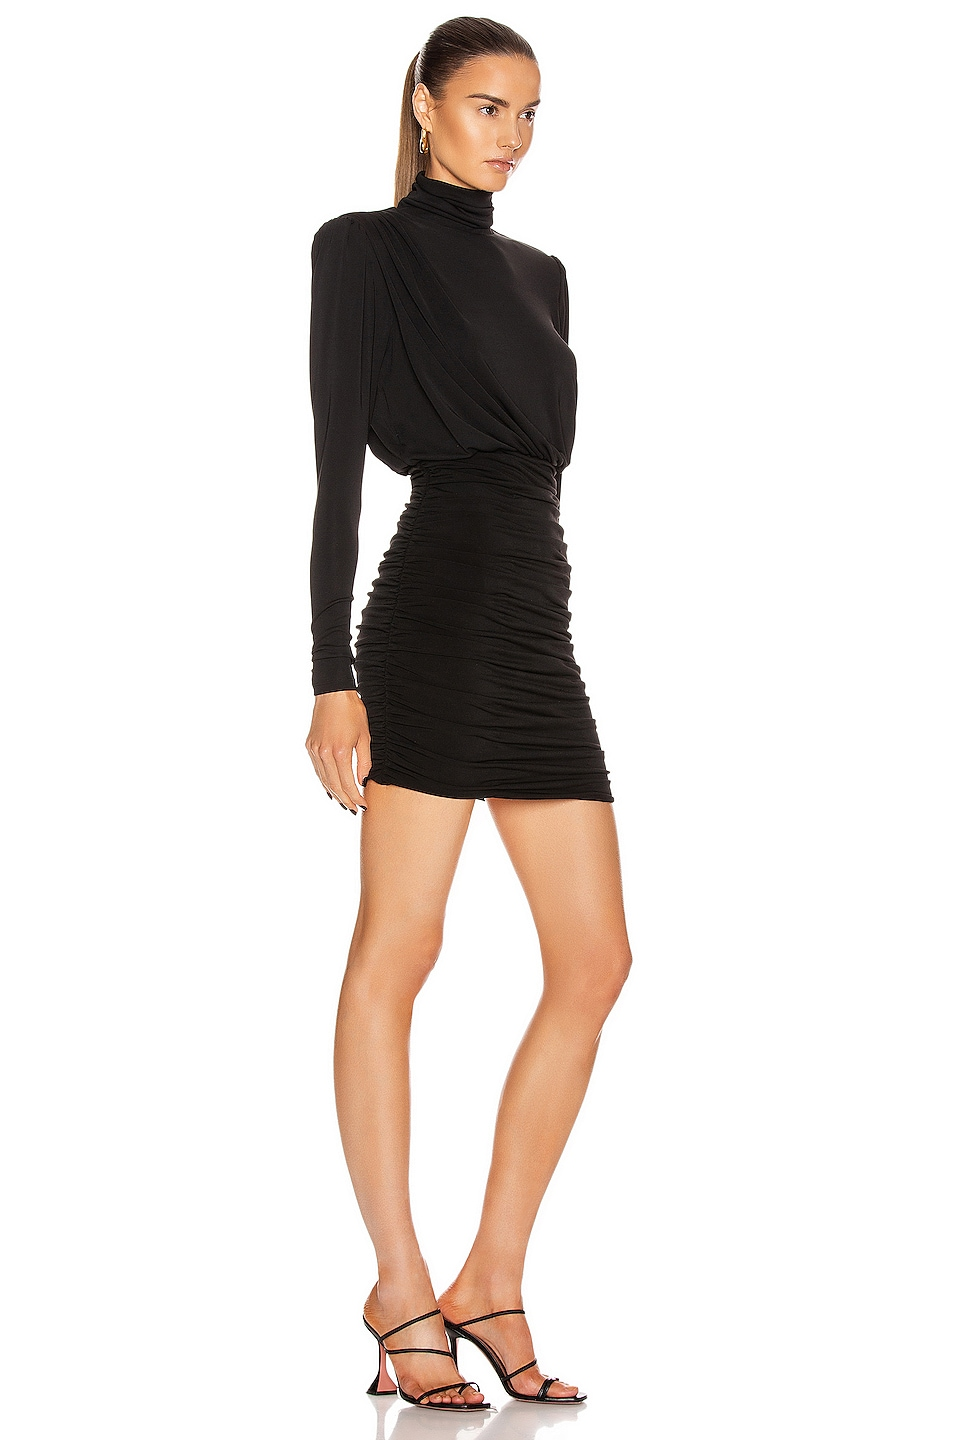 Image 2 of Cinq a Sept Isla Dress in Black